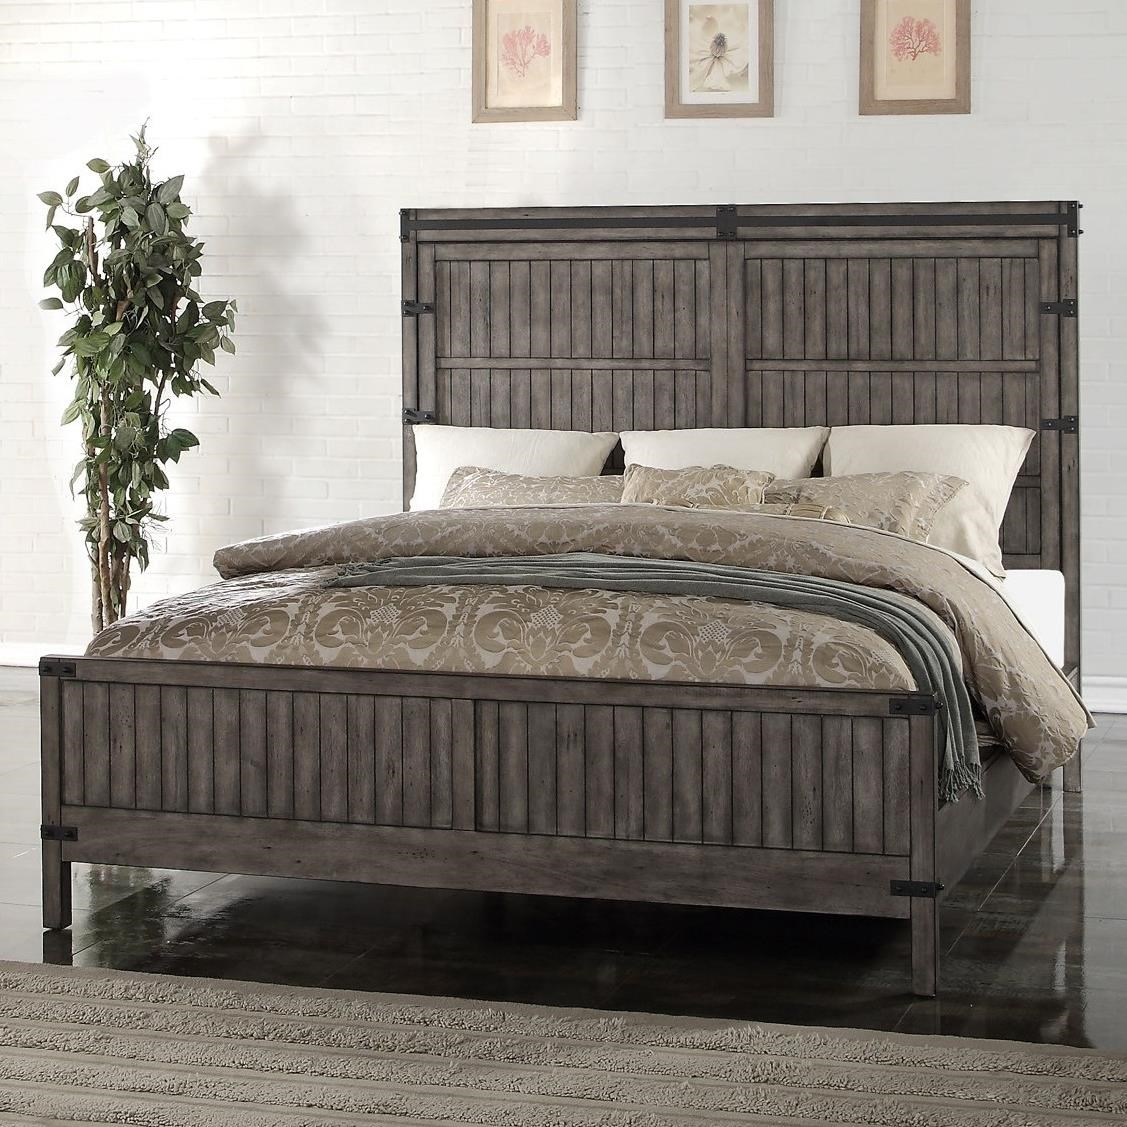 Legends Furniture Storehouse Collection King Wood Panel